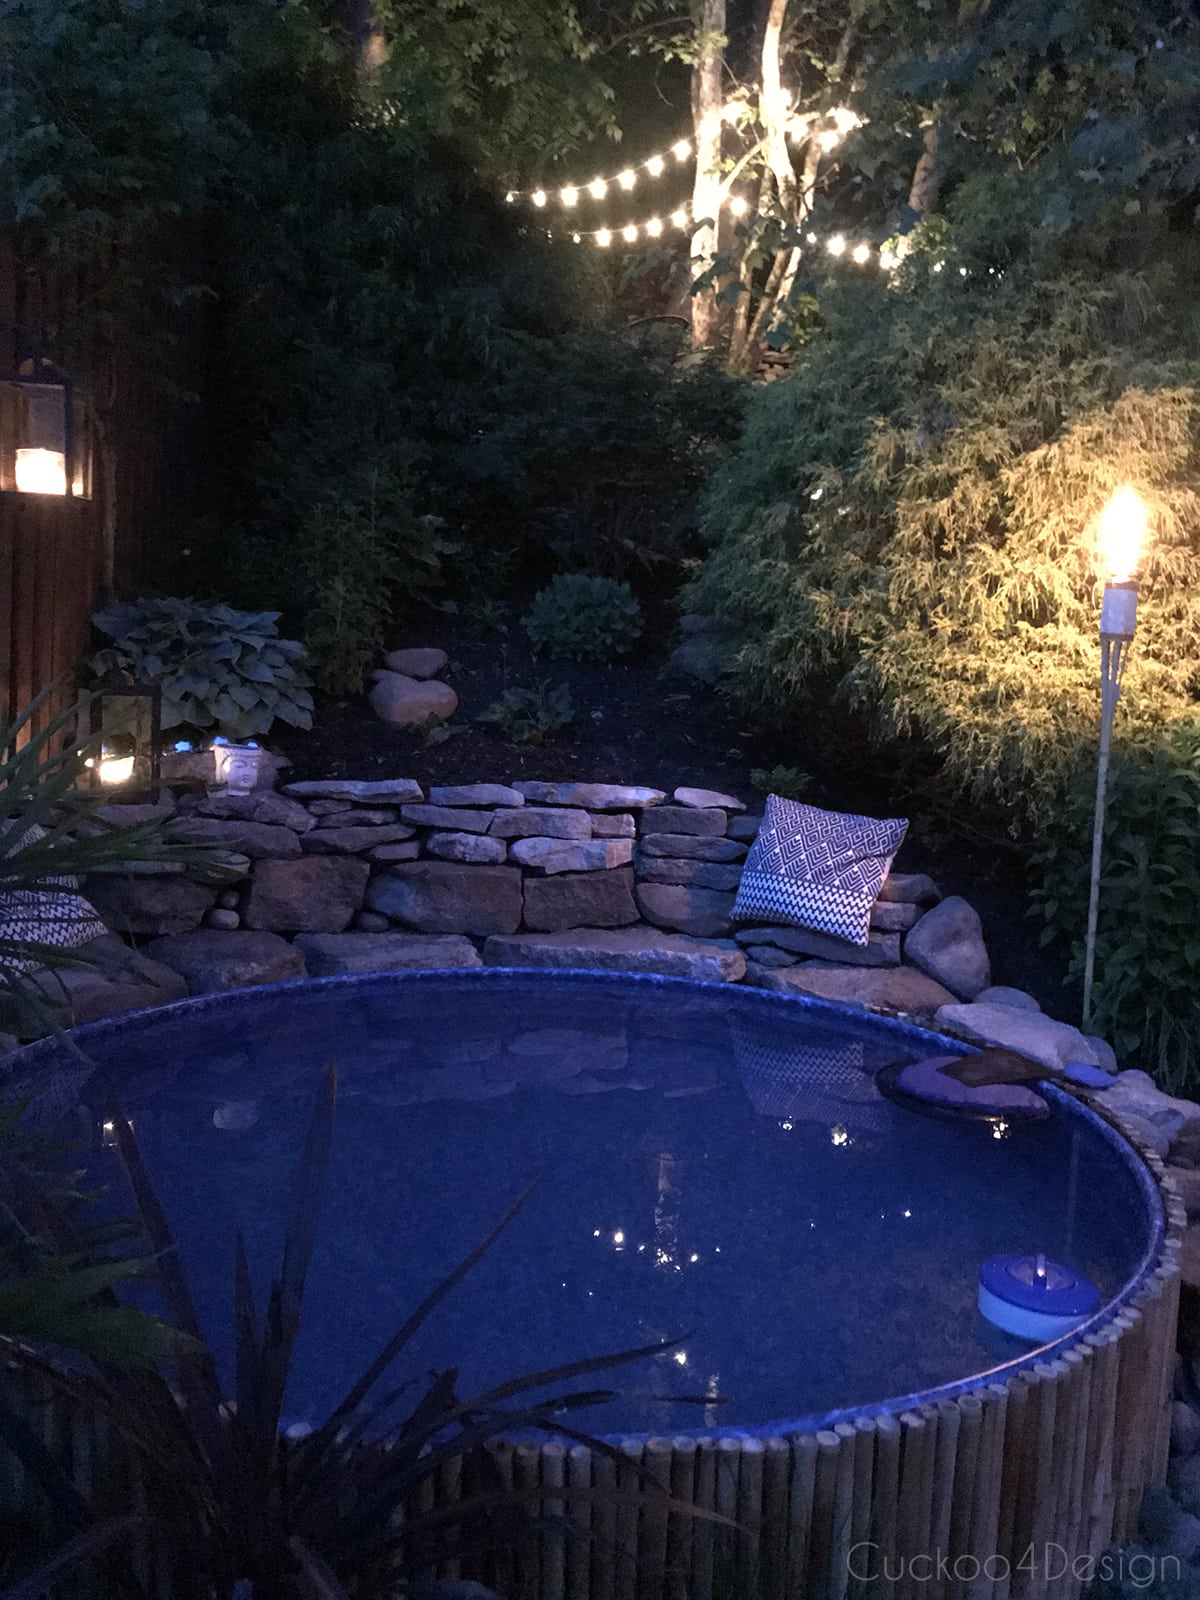 stock tank pool with tiki torches at night